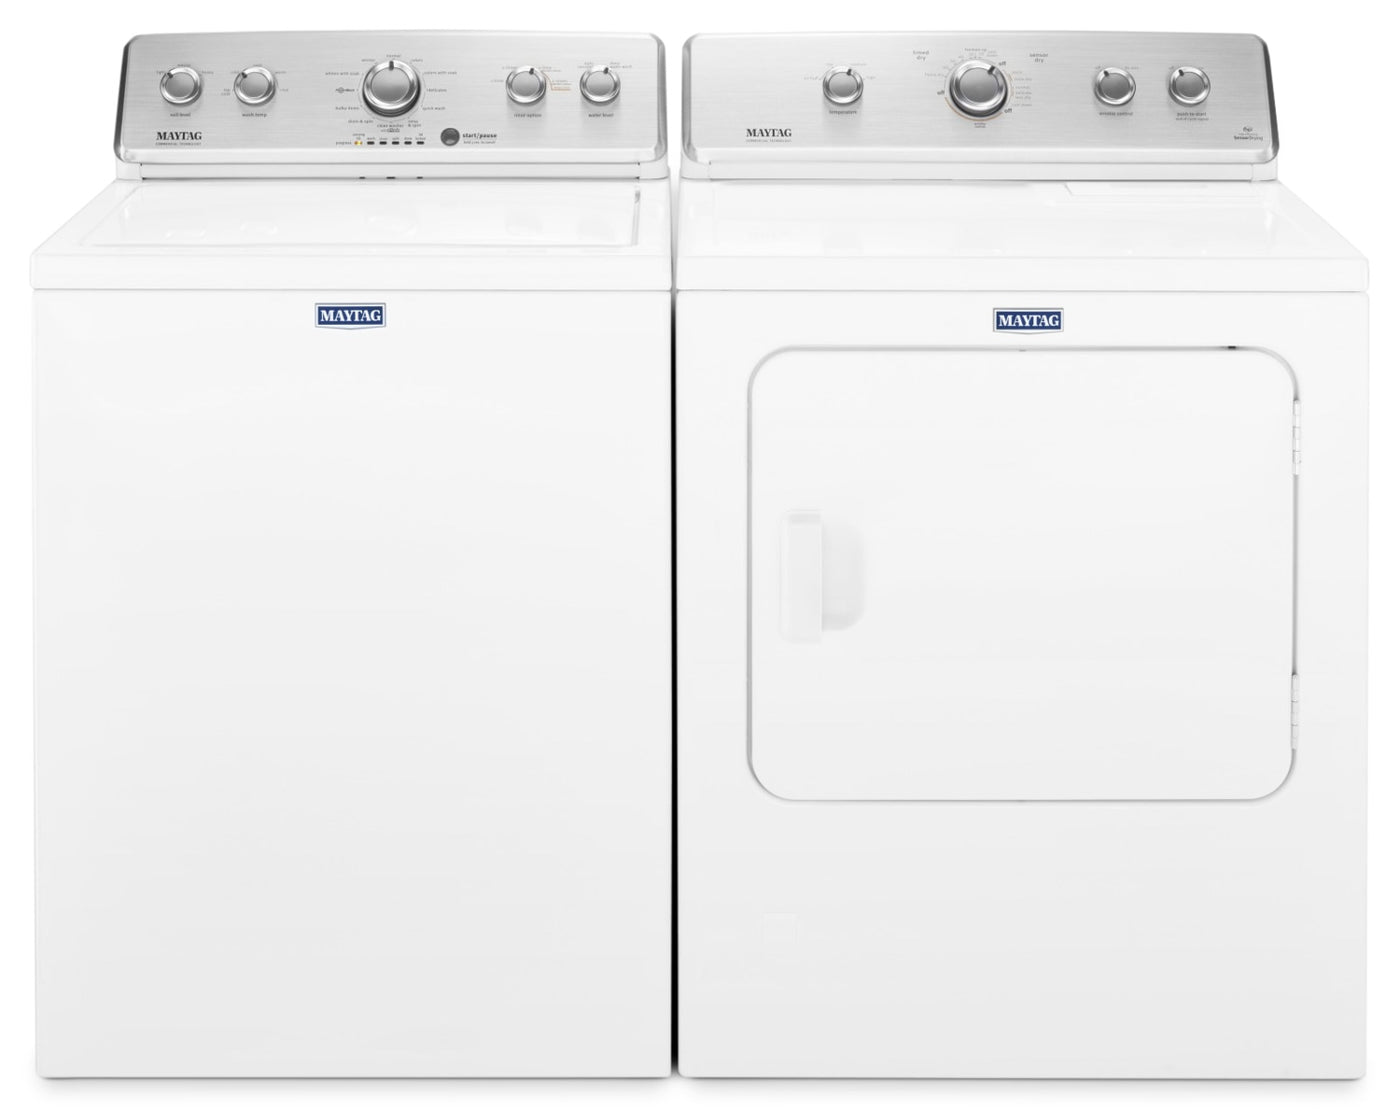 Maytag 4 4 Cu  Ft  Top-Load Washer and 7 0 Cu  Ft  Electric Dryer – White